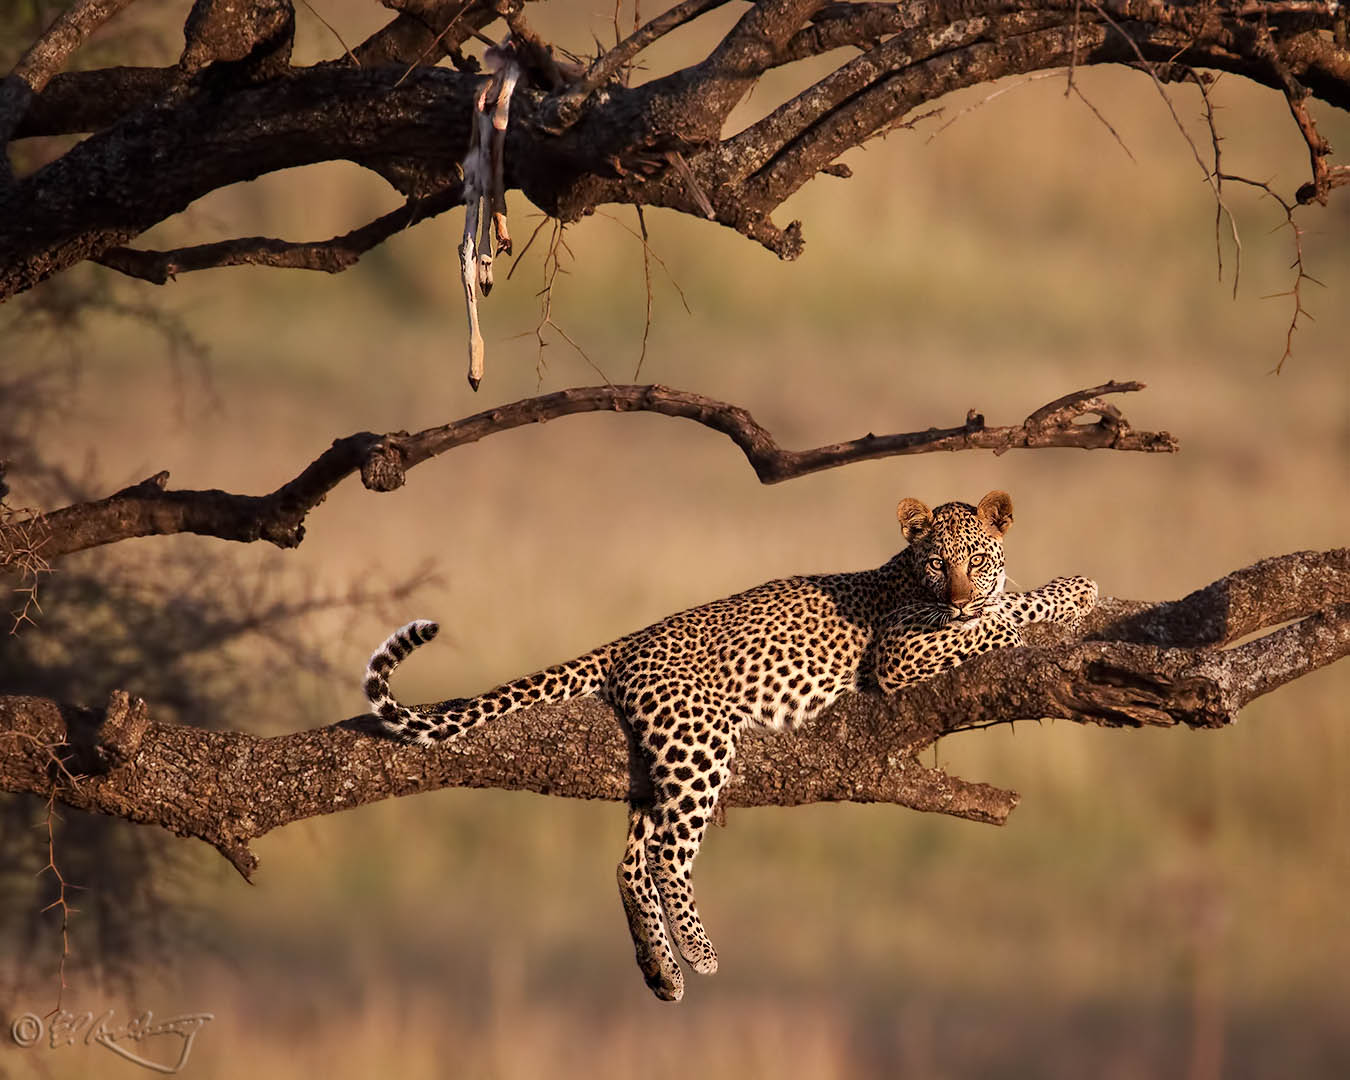 Young_Leopard_in_tree-c71